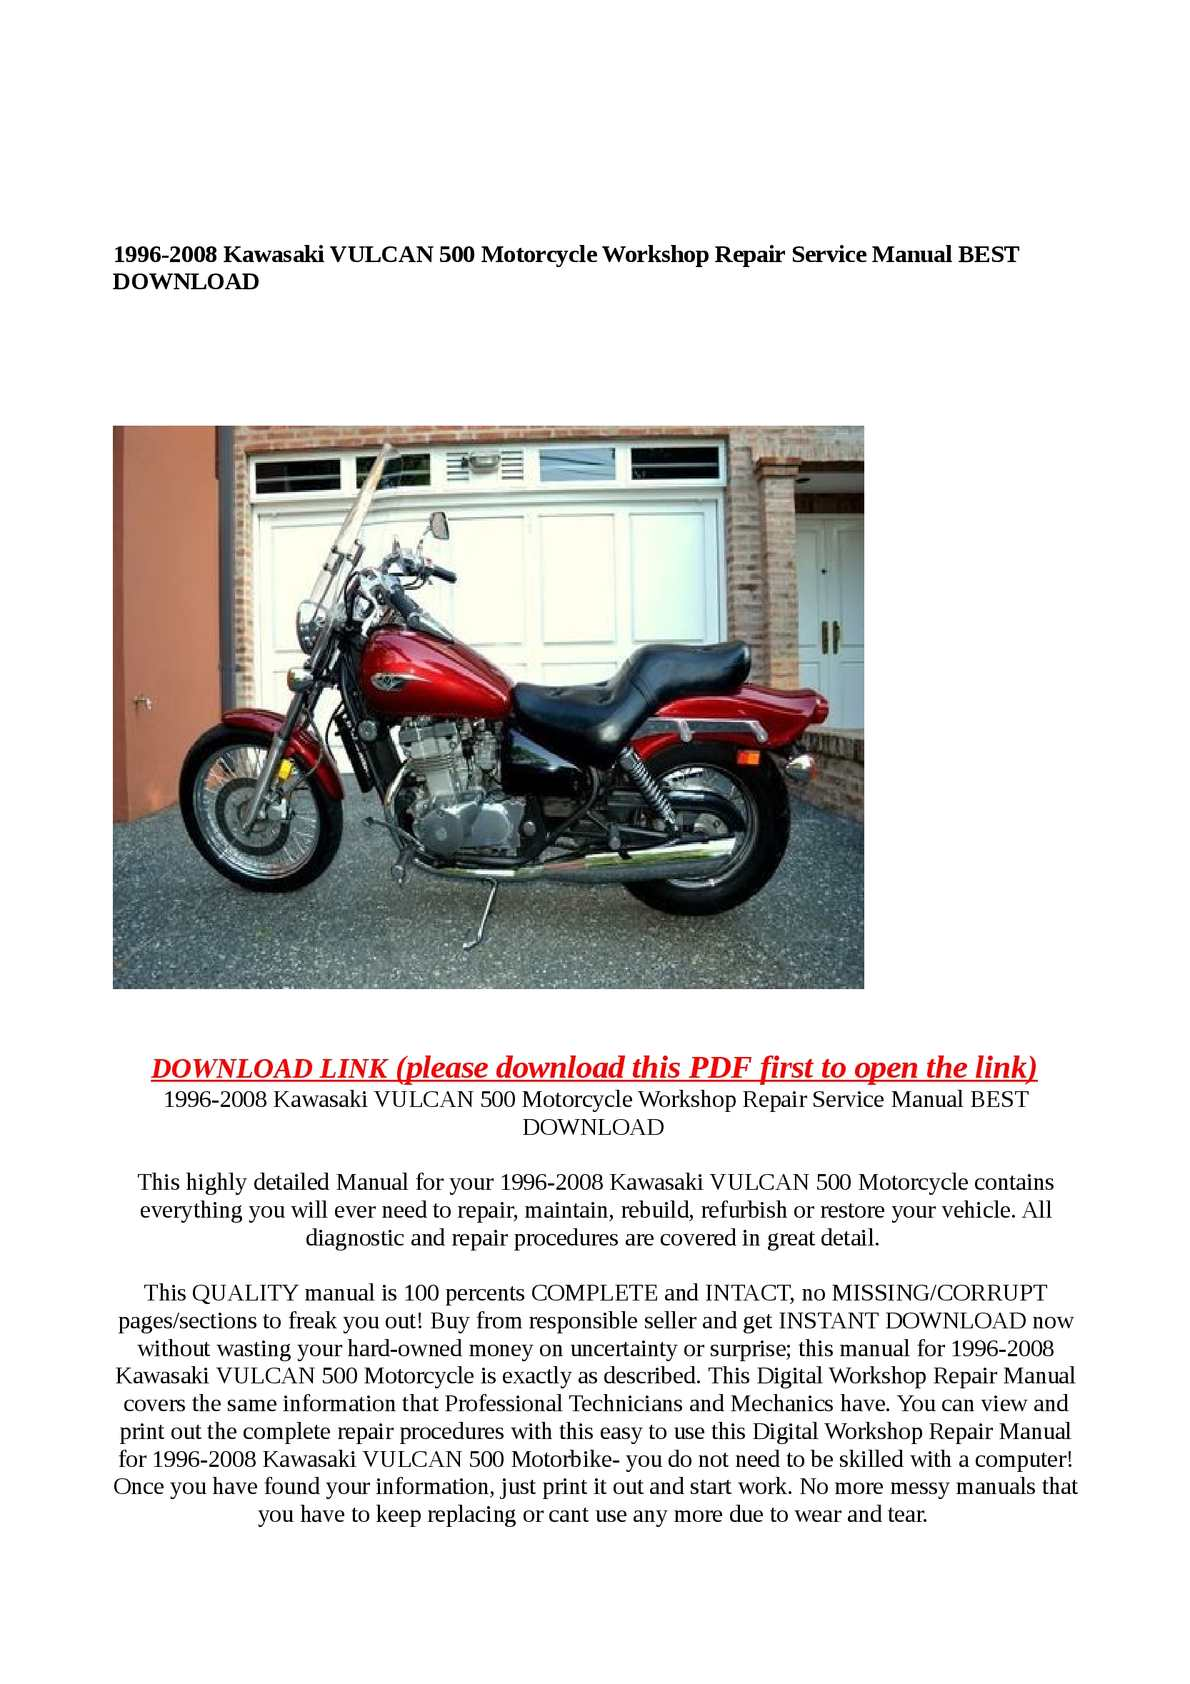 Calaméo - 1996-2008 Kawasaki VULCAN 500 Motorcycle Workshop Repair Service  Manual BEST DOWNLOAD